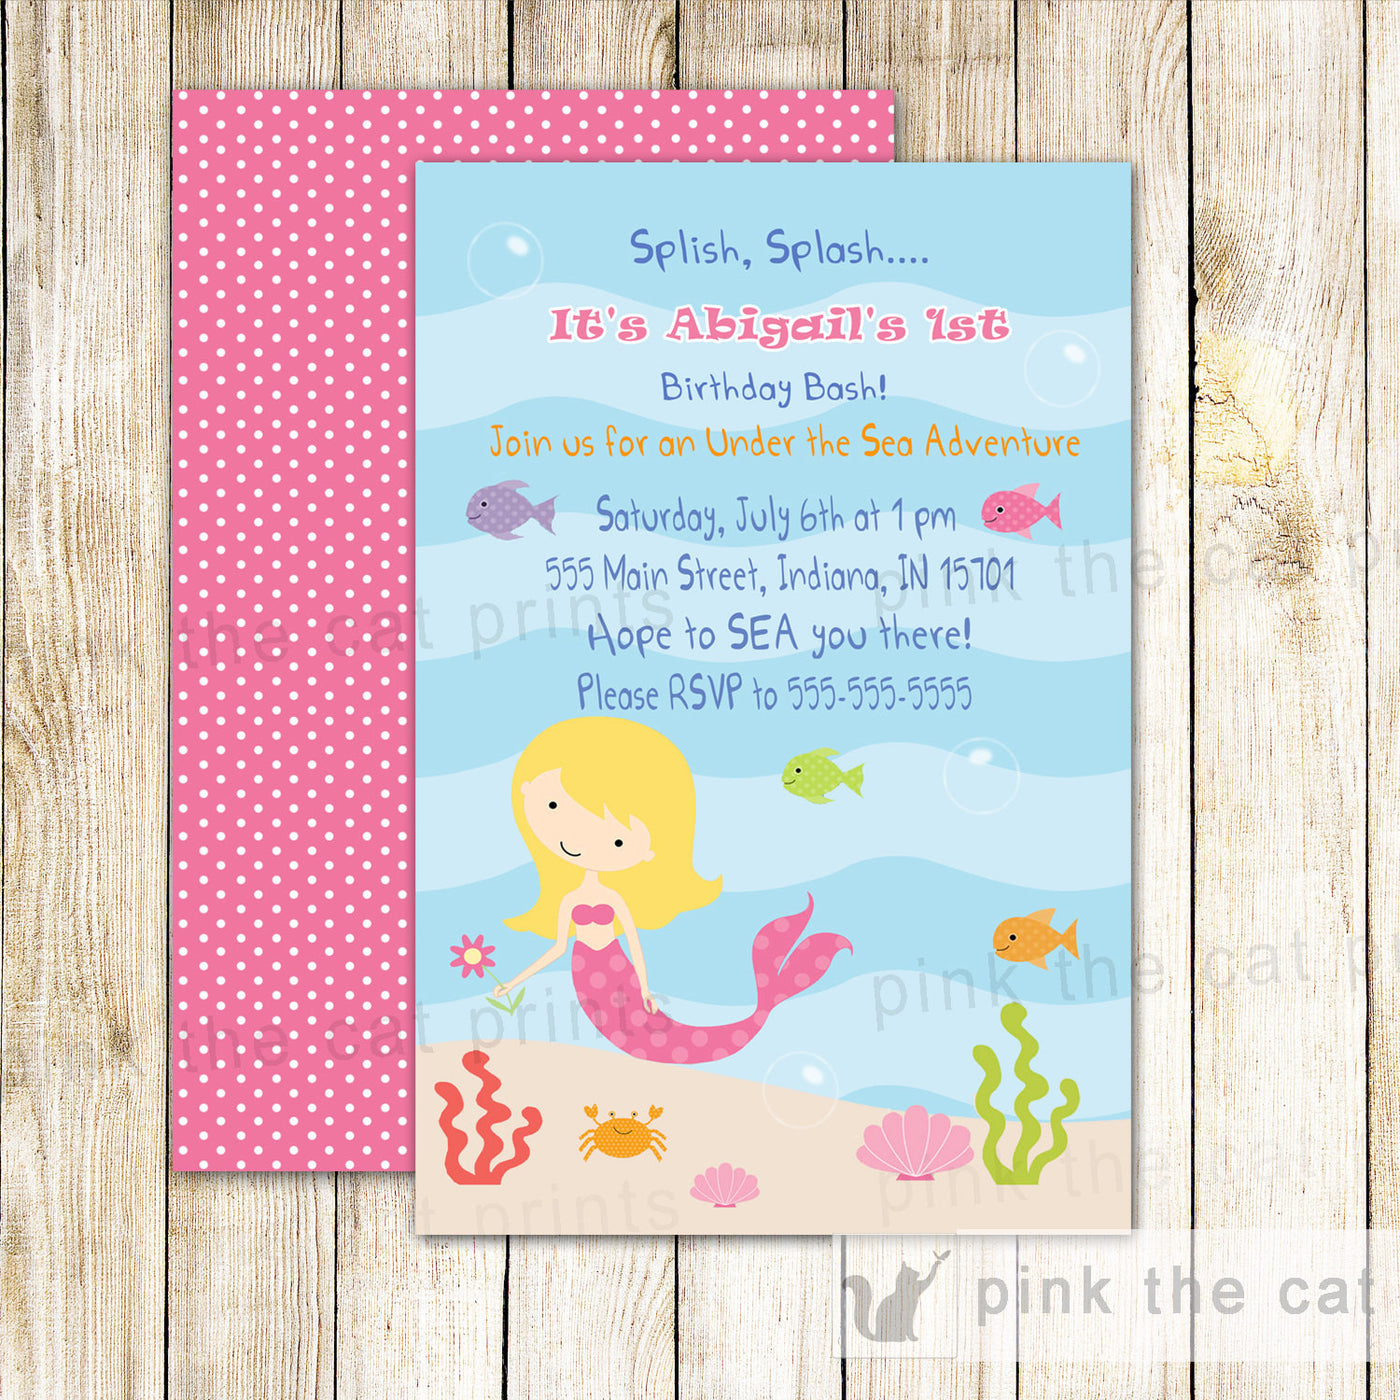 Mermaid Invitation Girl Birthday Party Pink The Cat